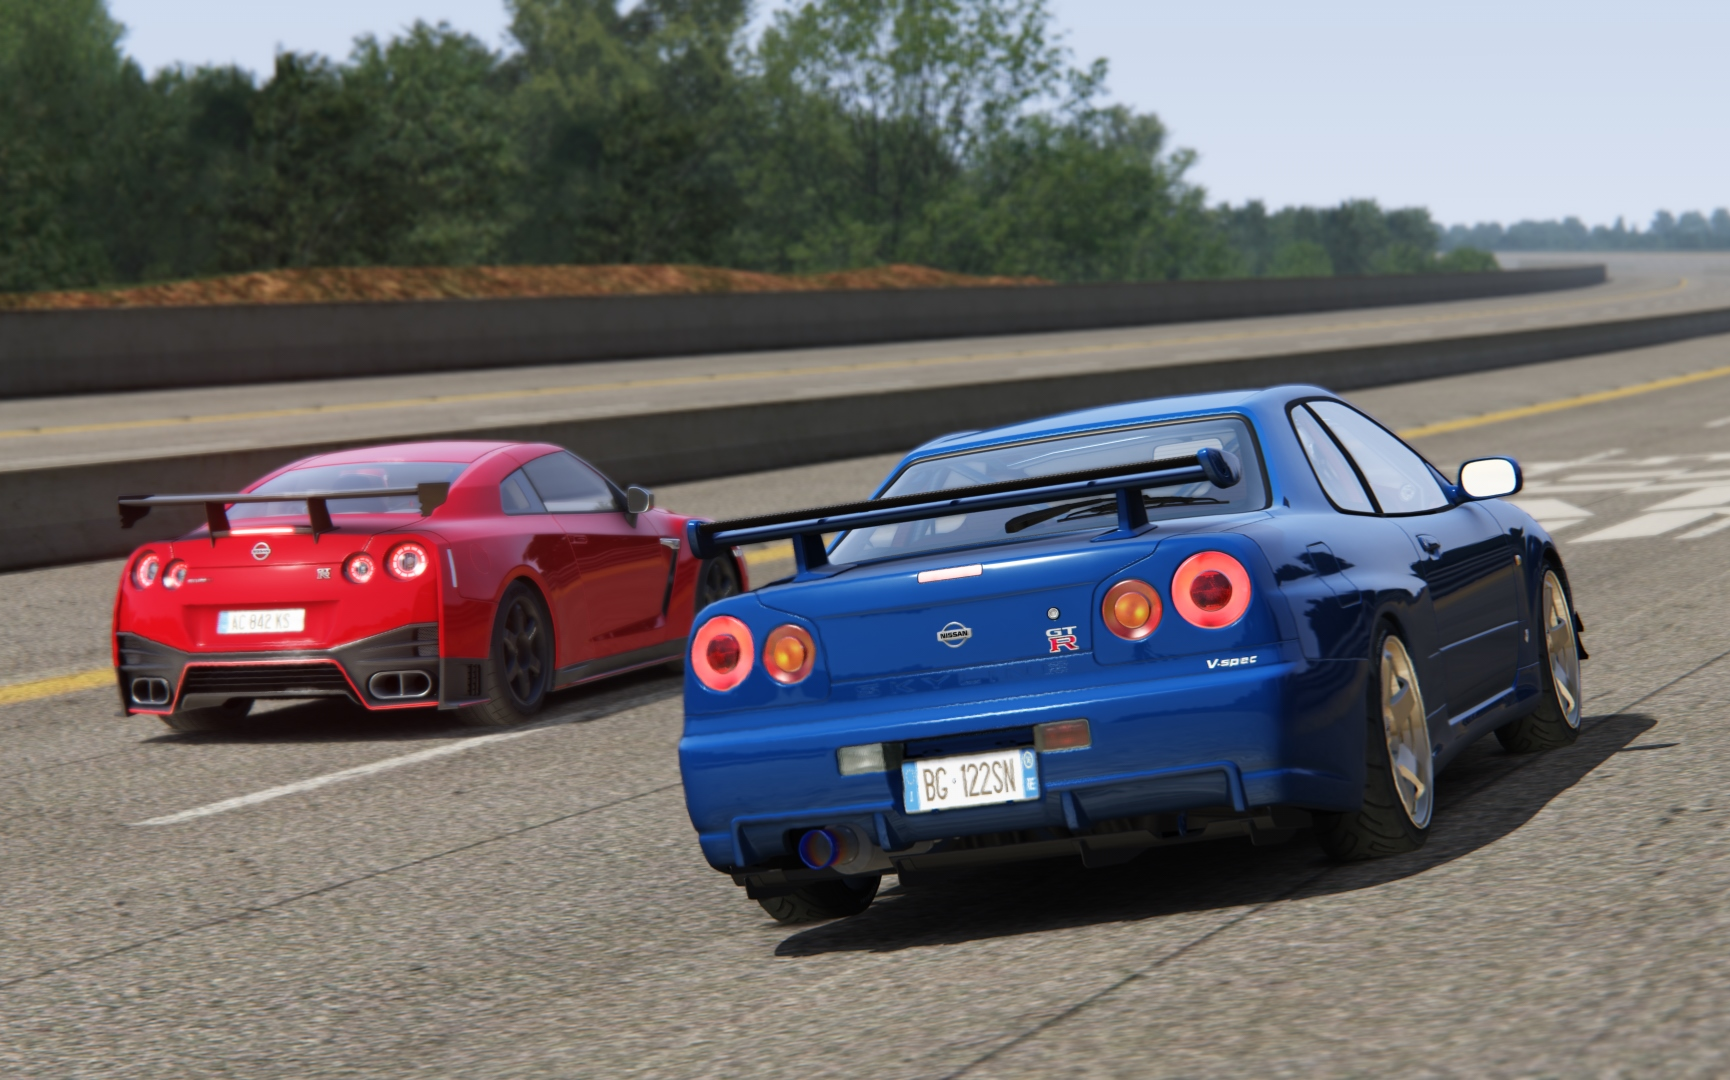 【assetto Corsa】ep23 我 吊锤 我自己?!魔改nissan Gt R R34与r35 Nismo